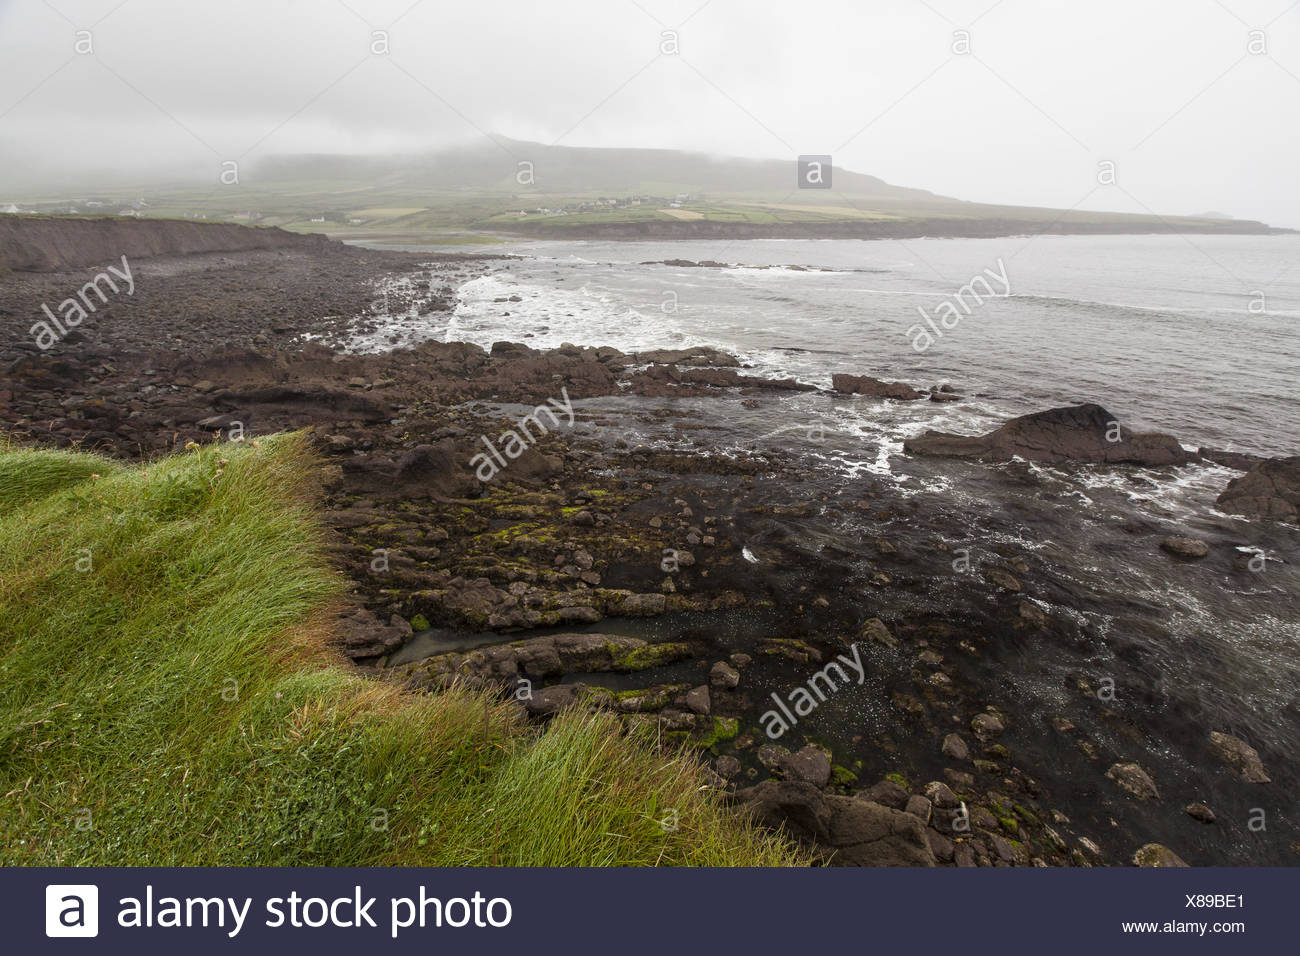 Bay on the Dingle Peninsula in Ireland - Stock Image